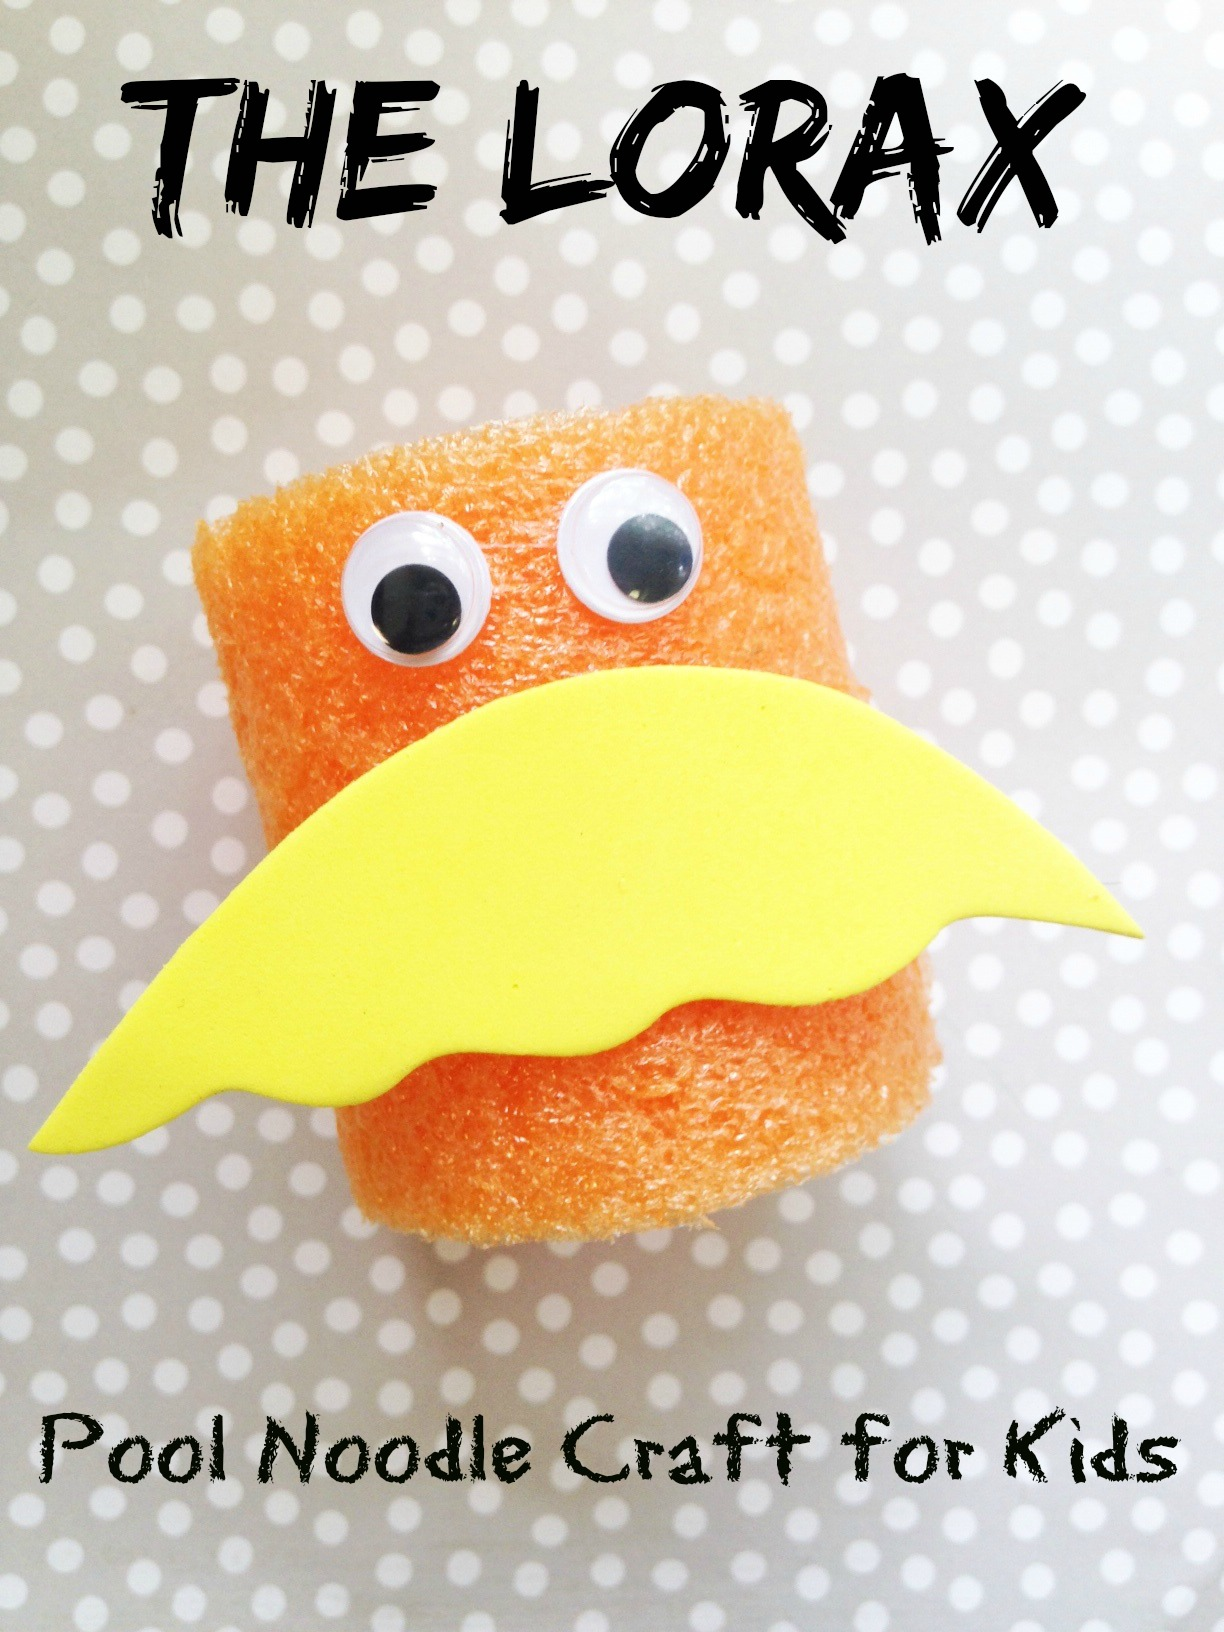 Easy dr seuss crafts - Dr Seuss The Lorax Pool Noodle Craft For Kids